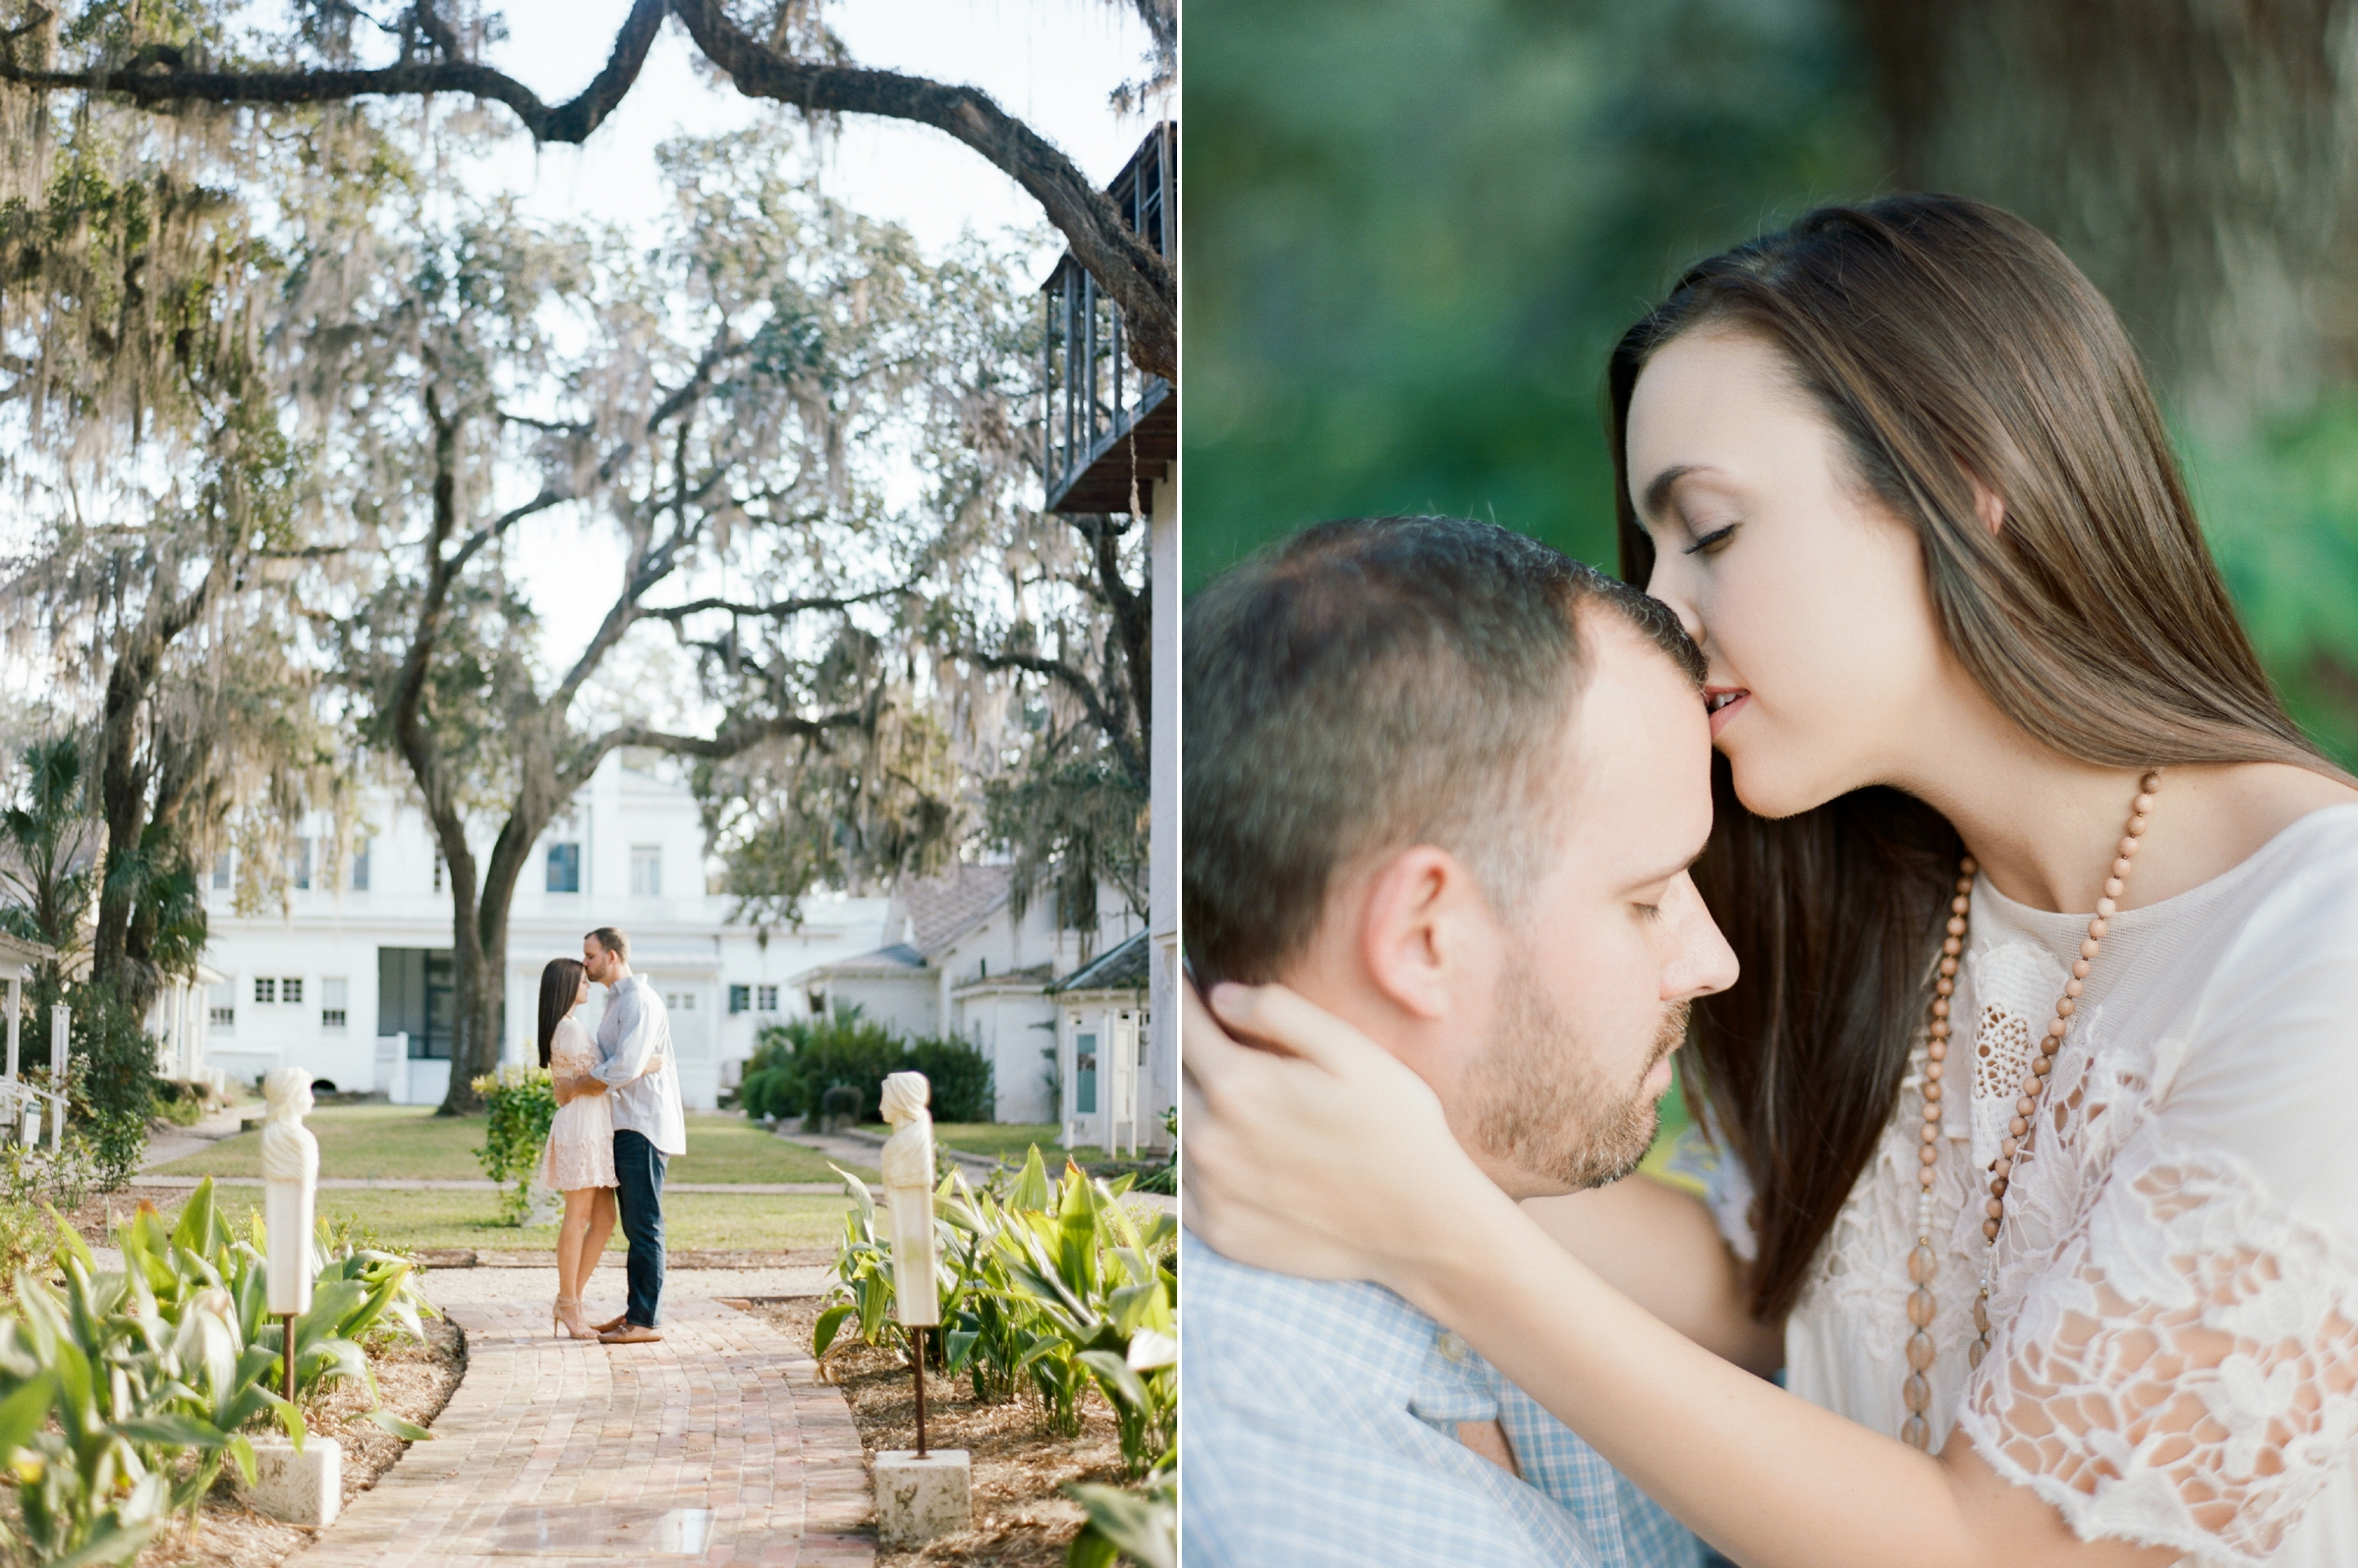 goodwood_museum_tallahassee_engagement_photographer_shannon_griffin_0007.jpg